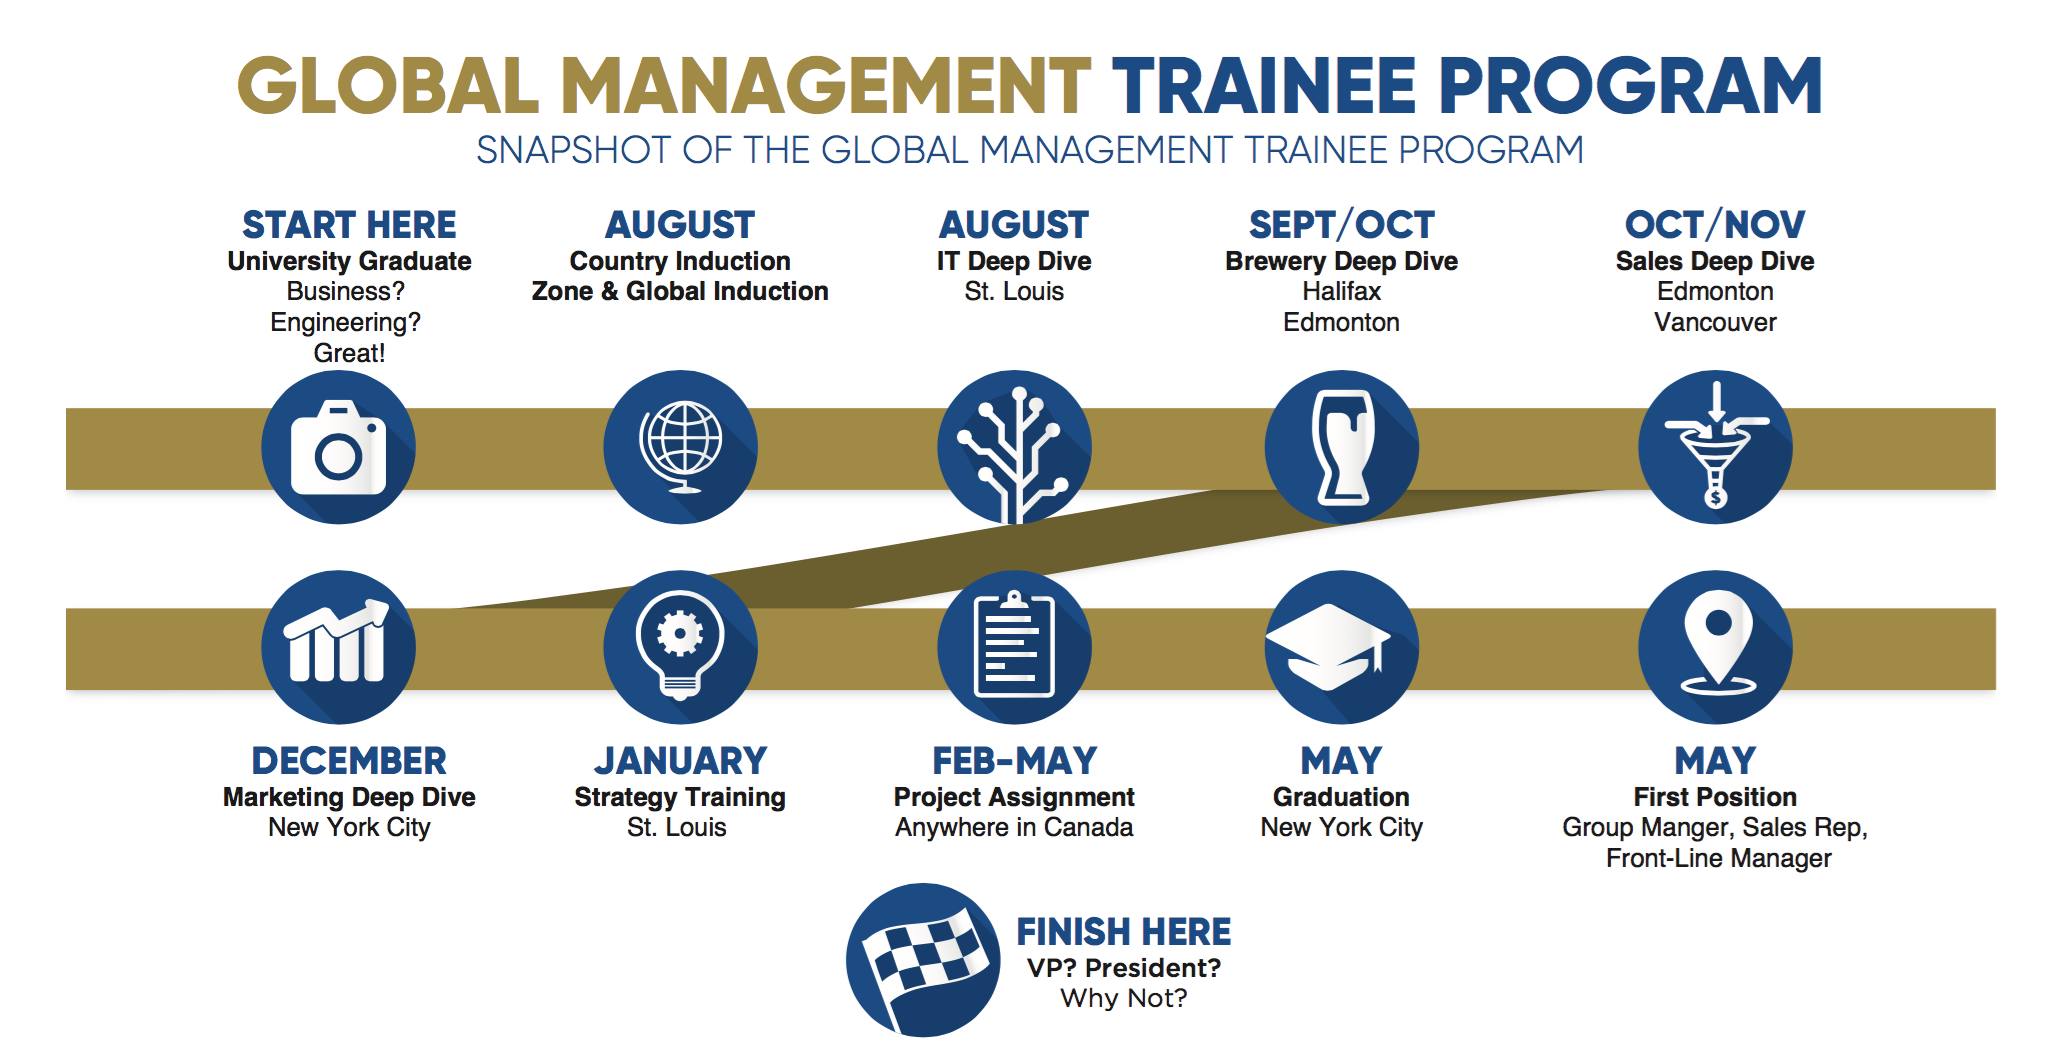 Global Management Trainee Program